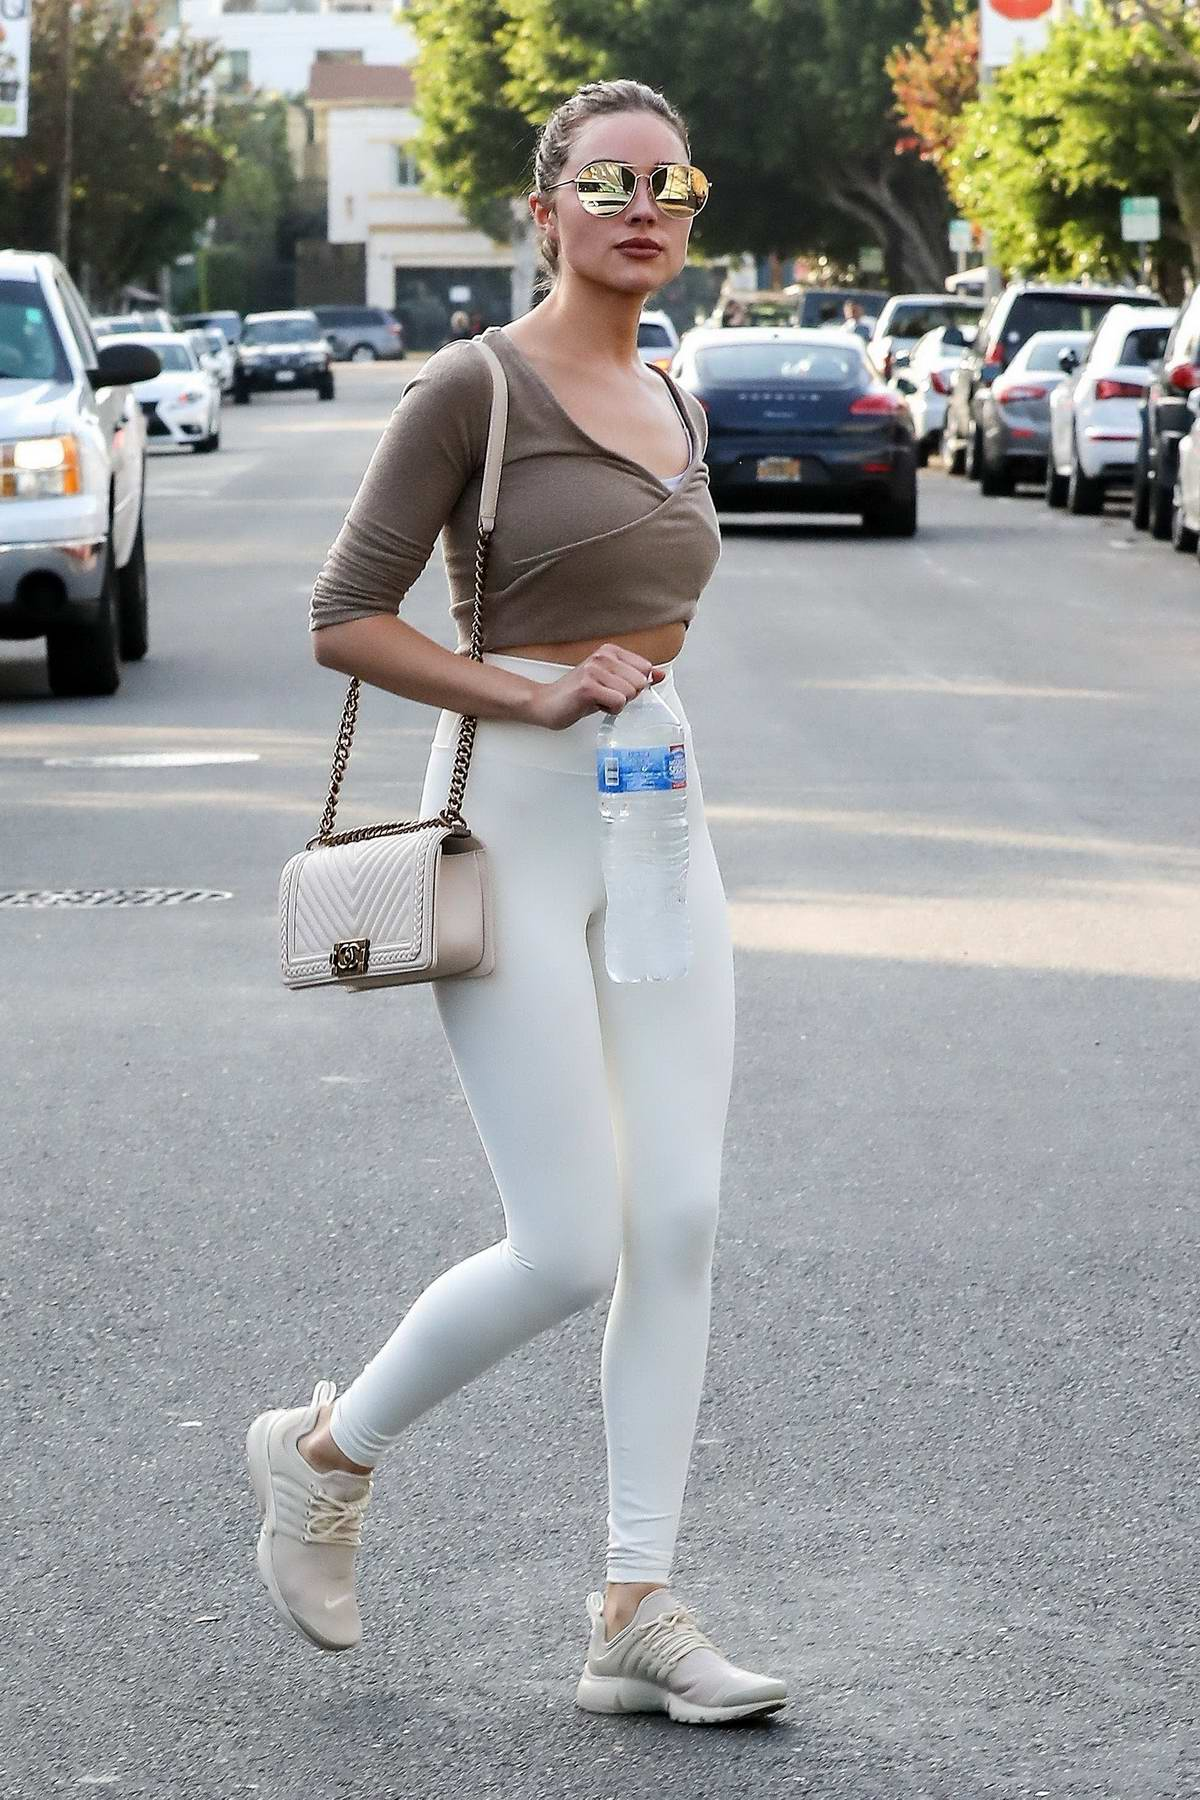 Olivia Culpo looks stunning in a brown top and white leggings while out in West Hollywood, Los Angeles